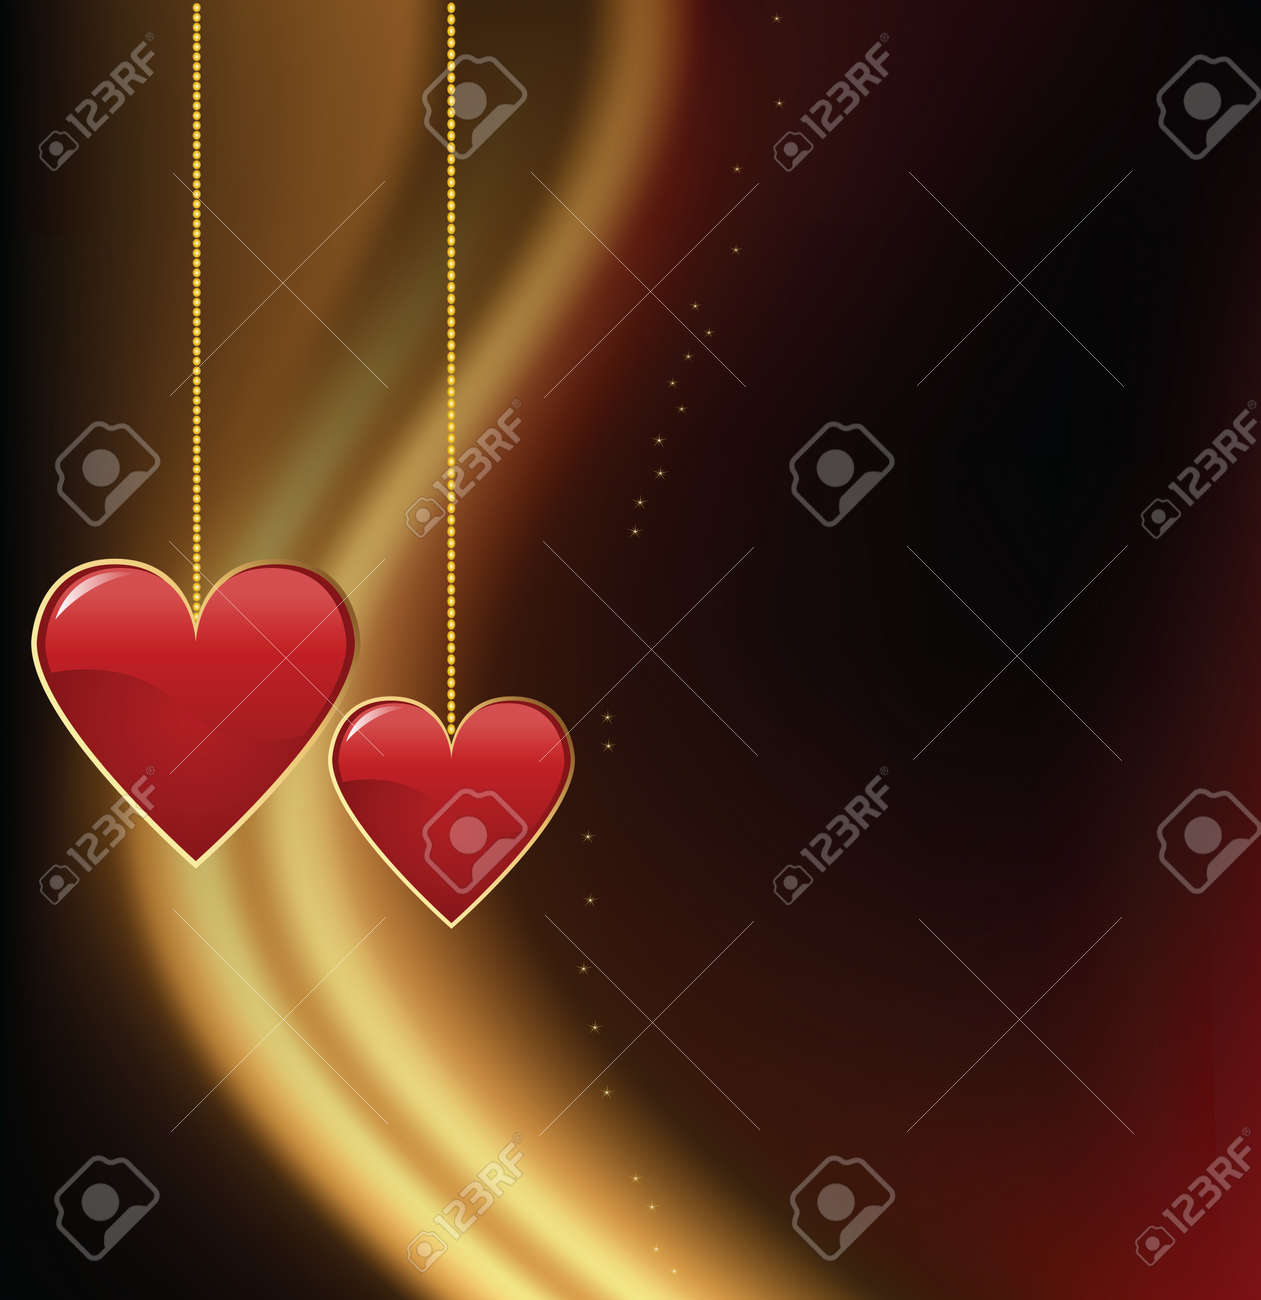 Valentine day two red hearts with dark background Stock Vector - 17627151